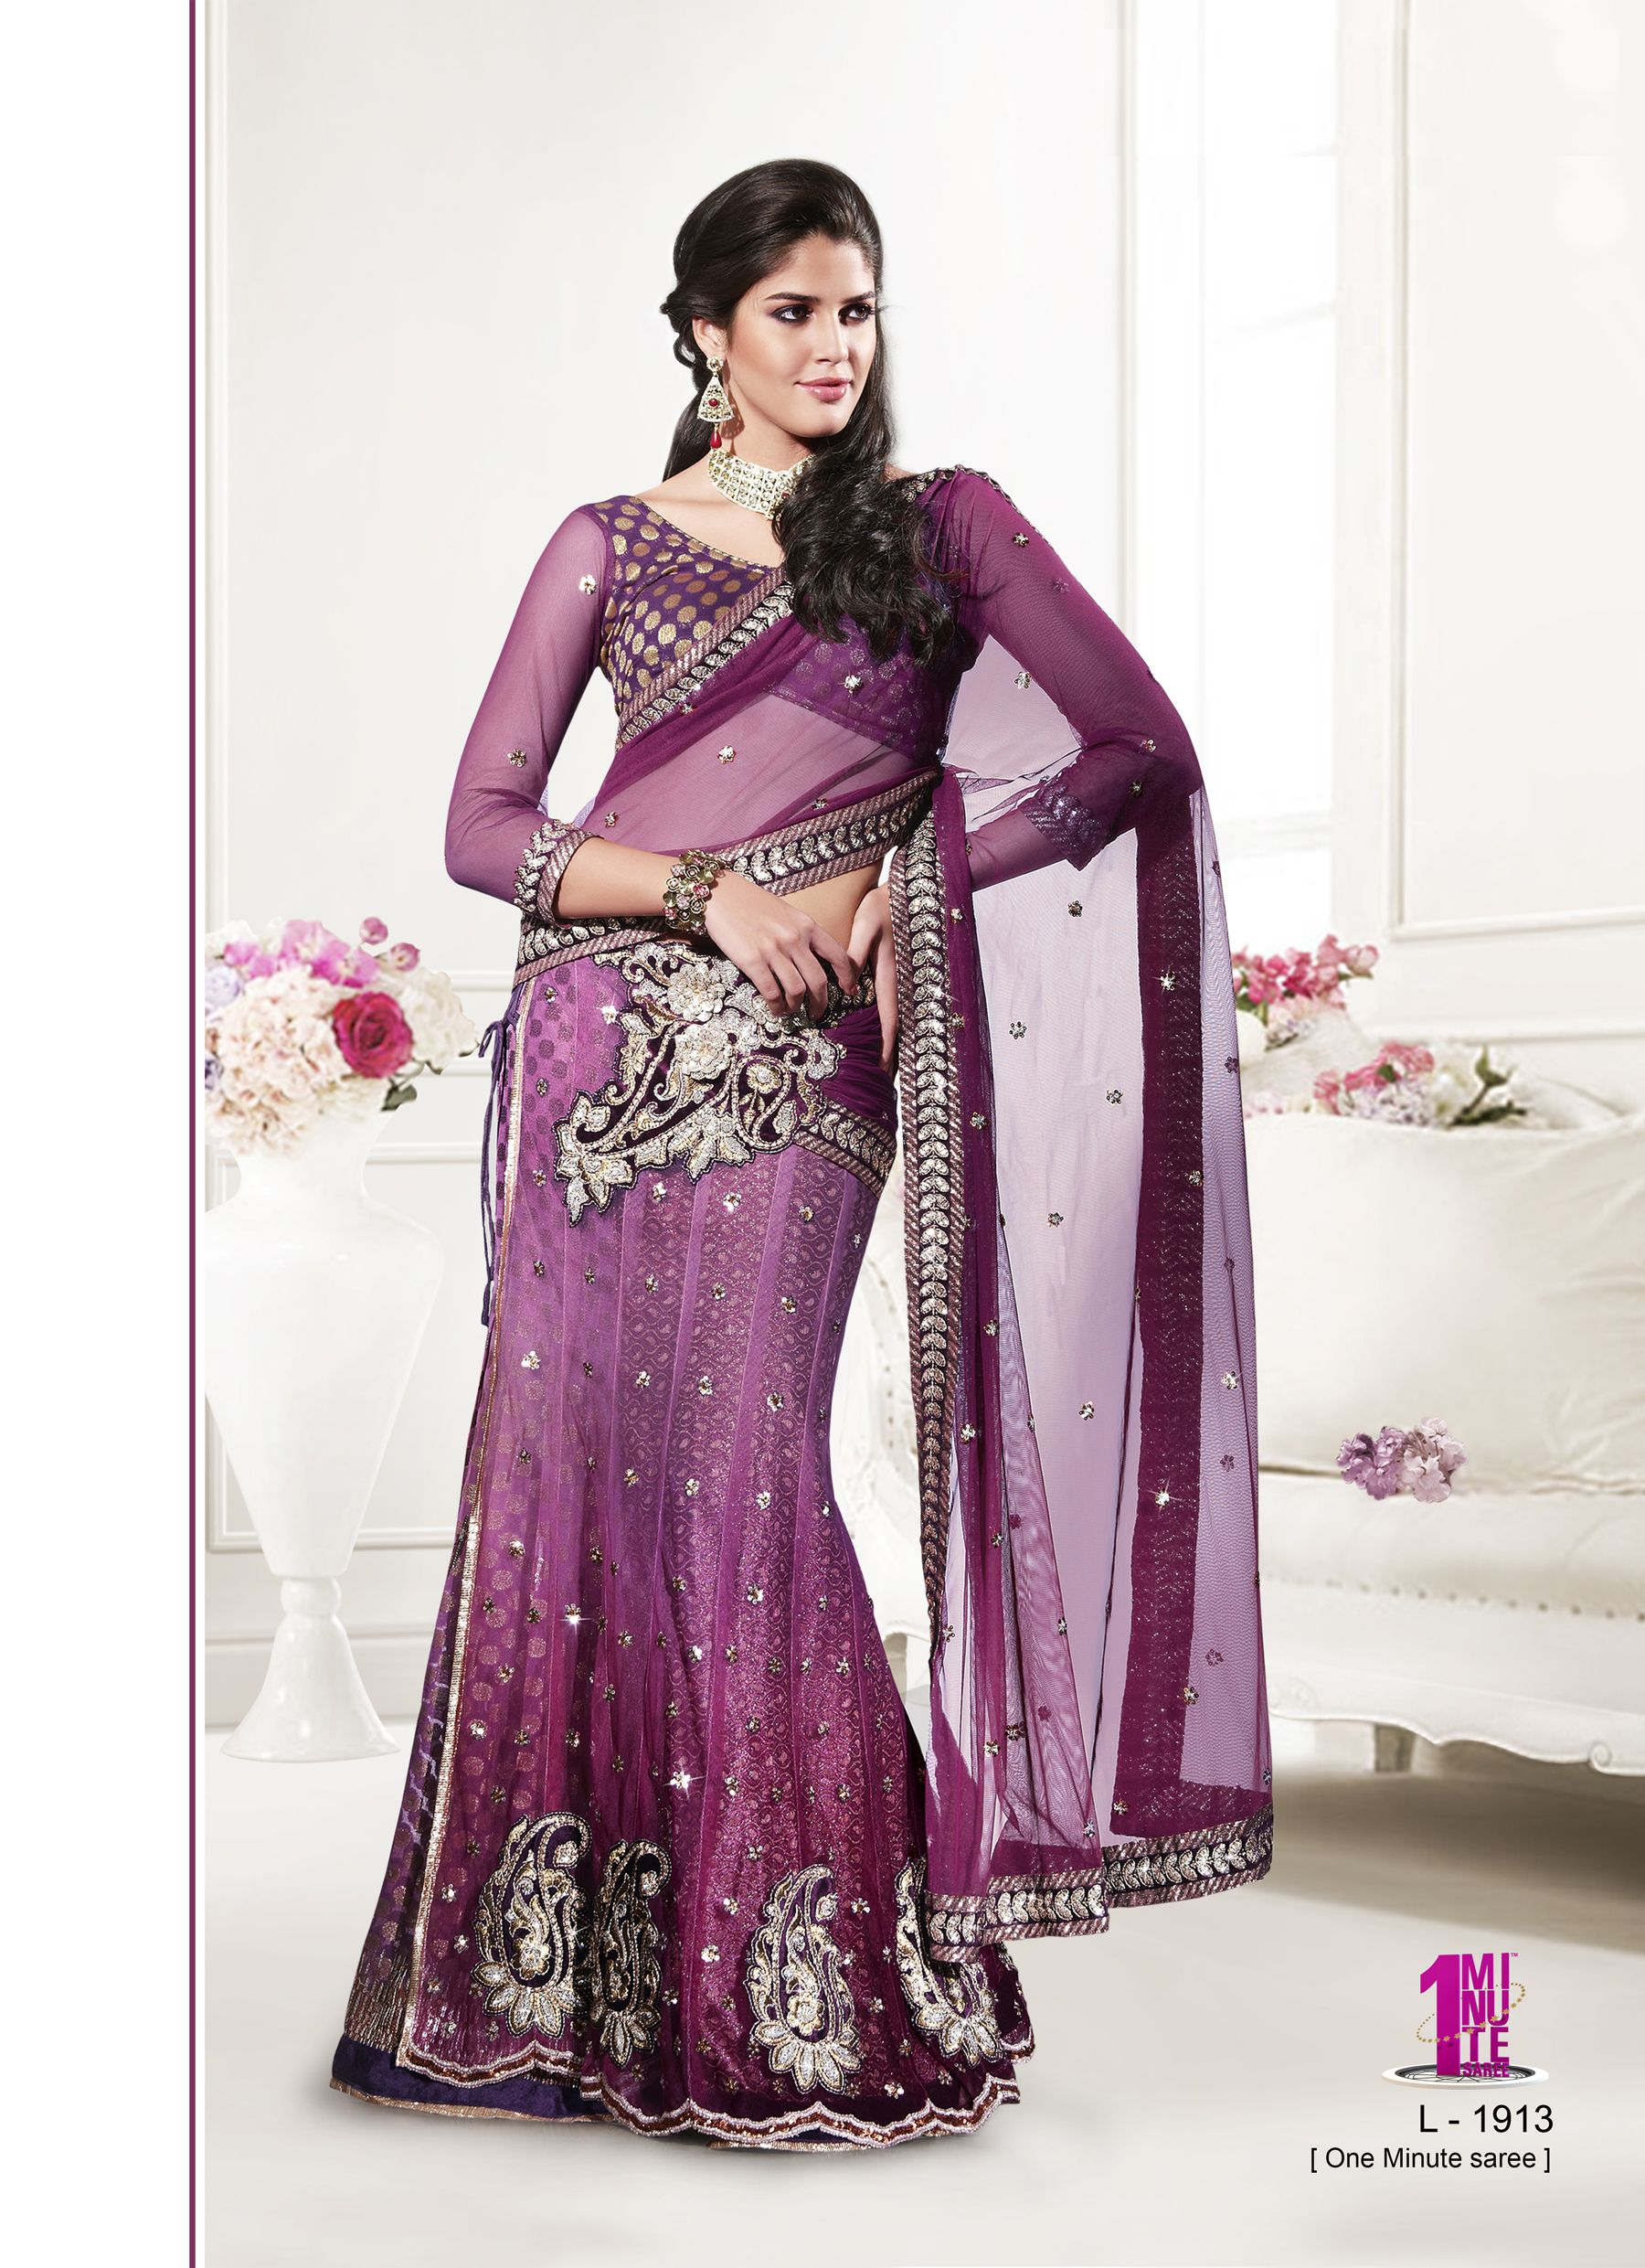 270f9e5f06 Buy latest designer Bollywood one minute saree at the best prices Bollywood sarees  online shopping with wholesale prices. #onlinesaree, #bollywoodsaree ...